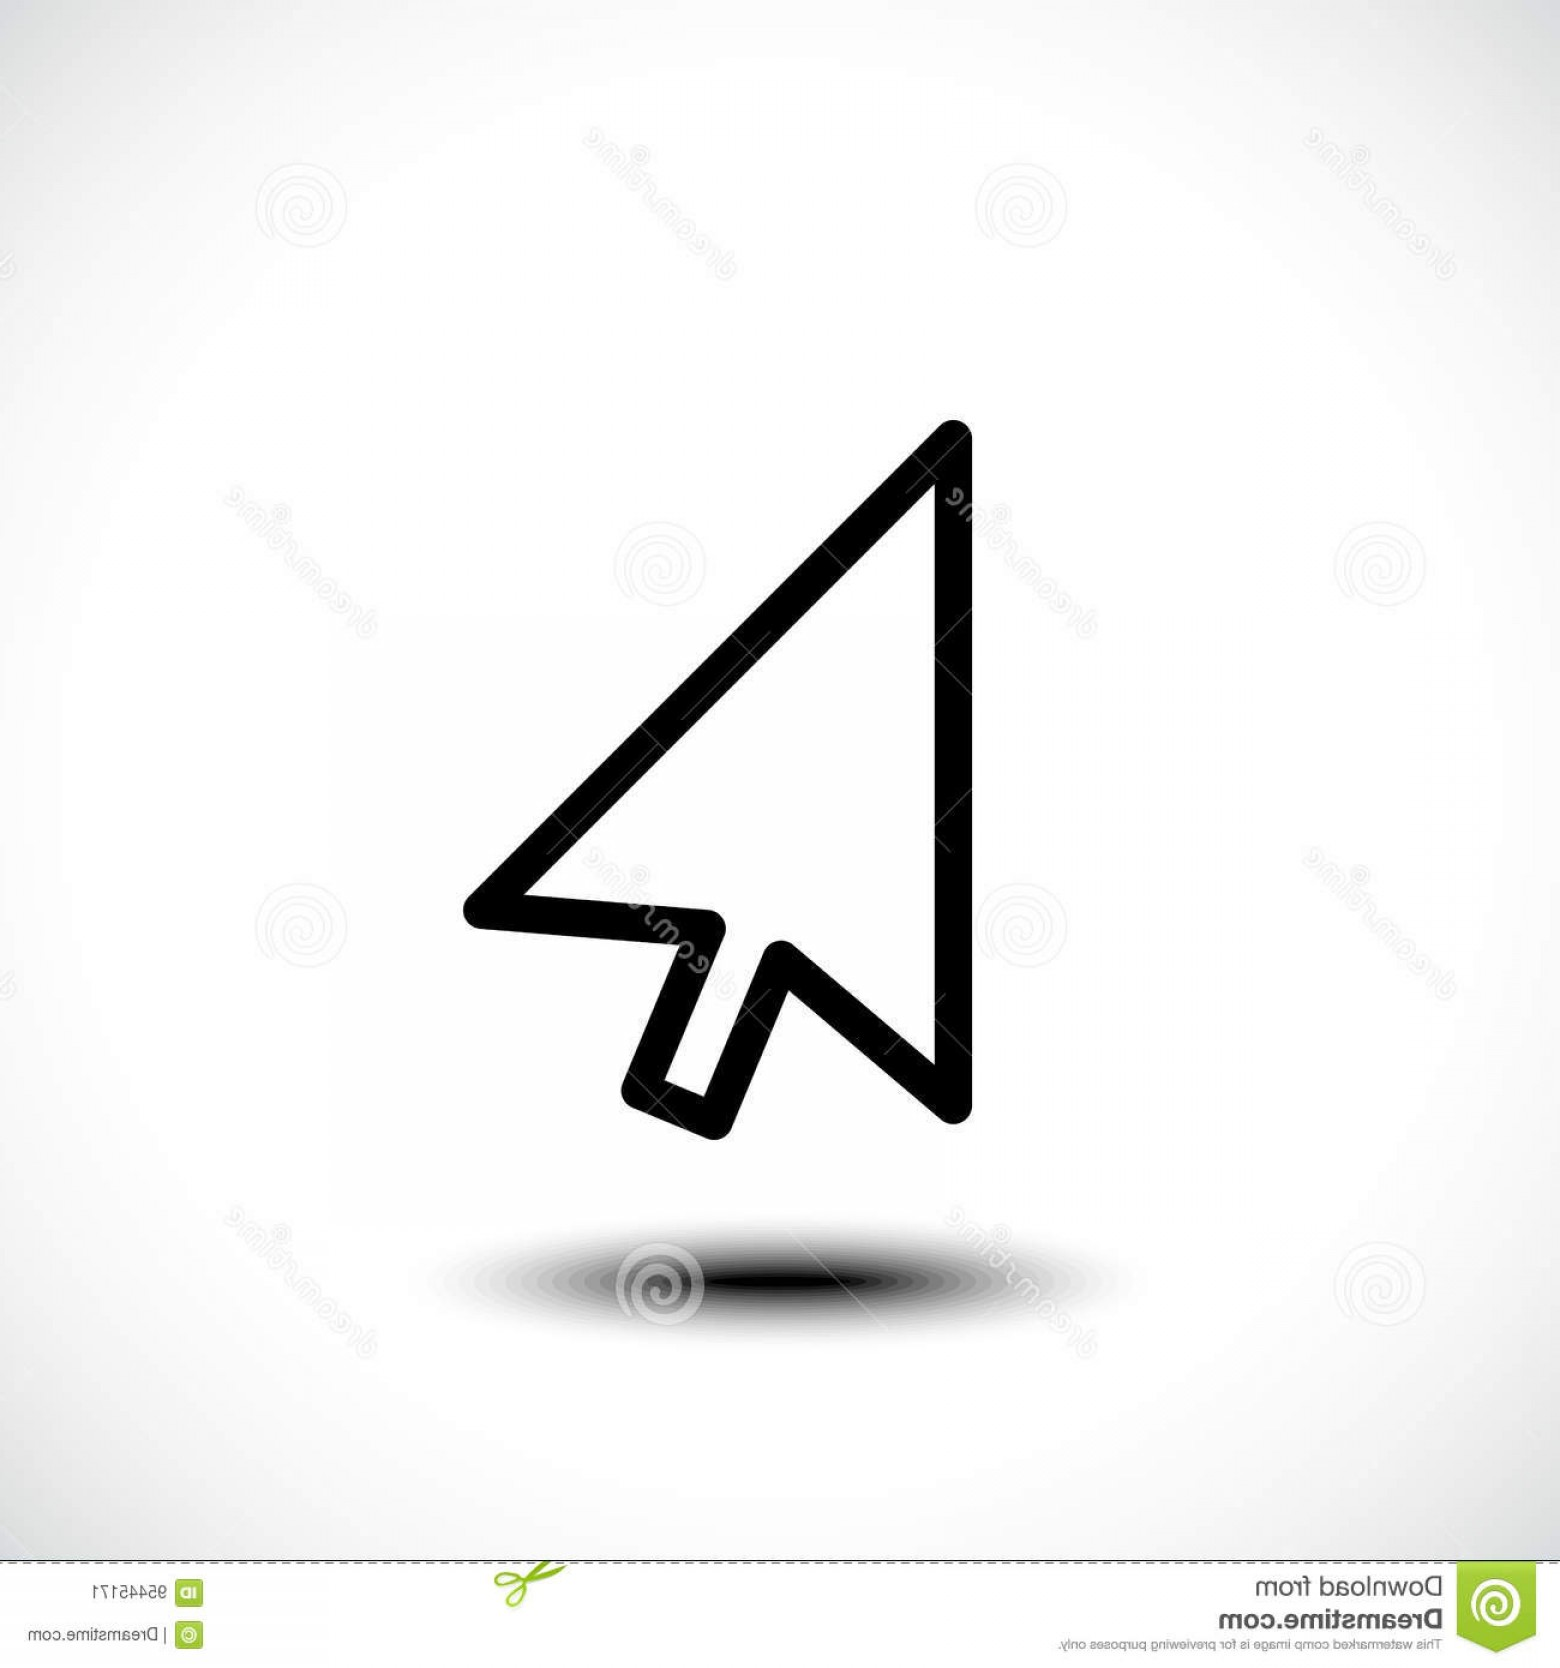 Computer Pointer Vector: Stock Illustration Computer Mouse Click Pointer Cursor Arrow Flat Icon Eps Image